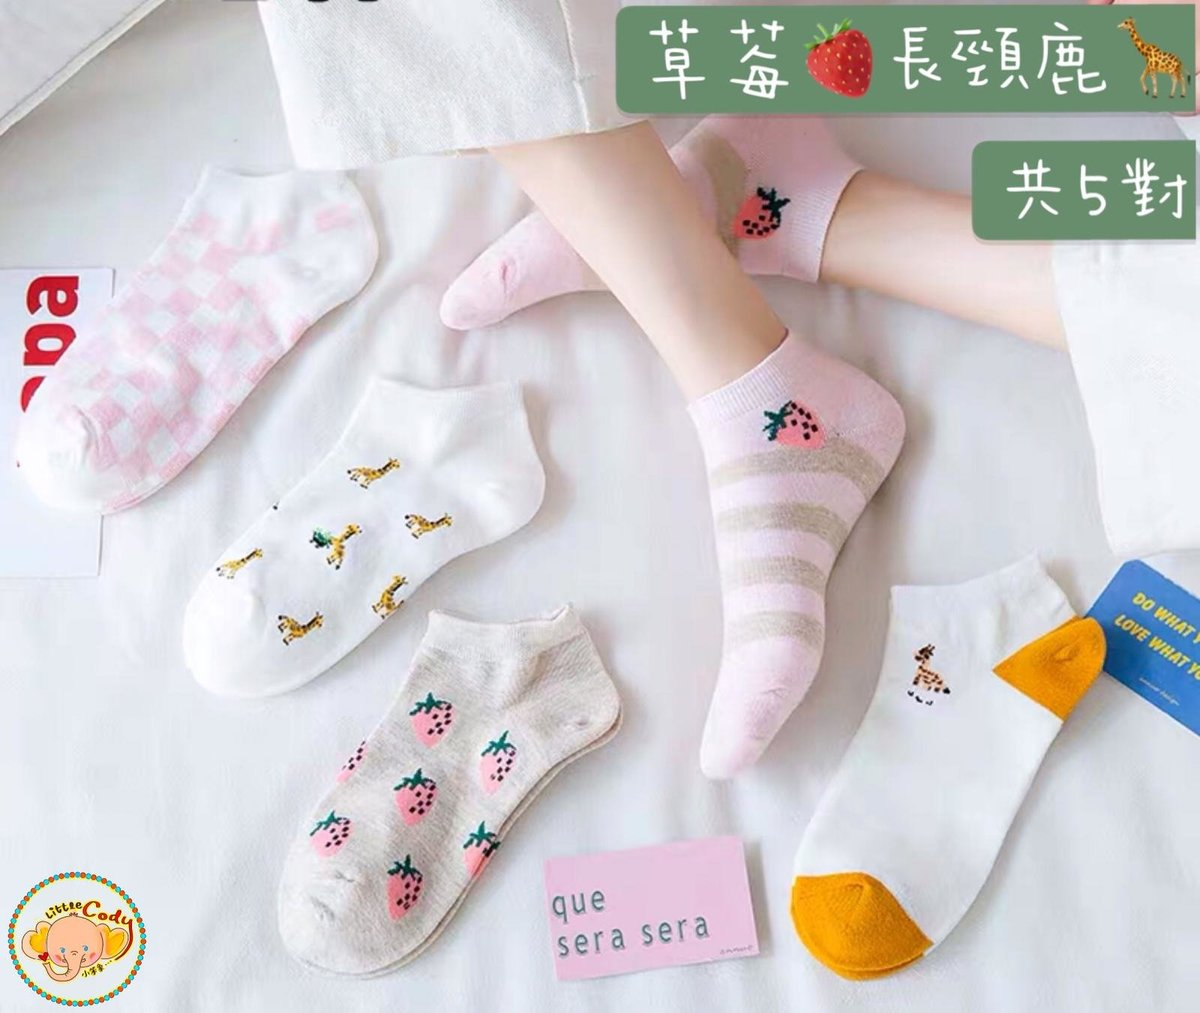 【5 Pairs, Mixed Patterns】Women's Cotton Short Socks【Strawberry + Giraffe】Size 35-40